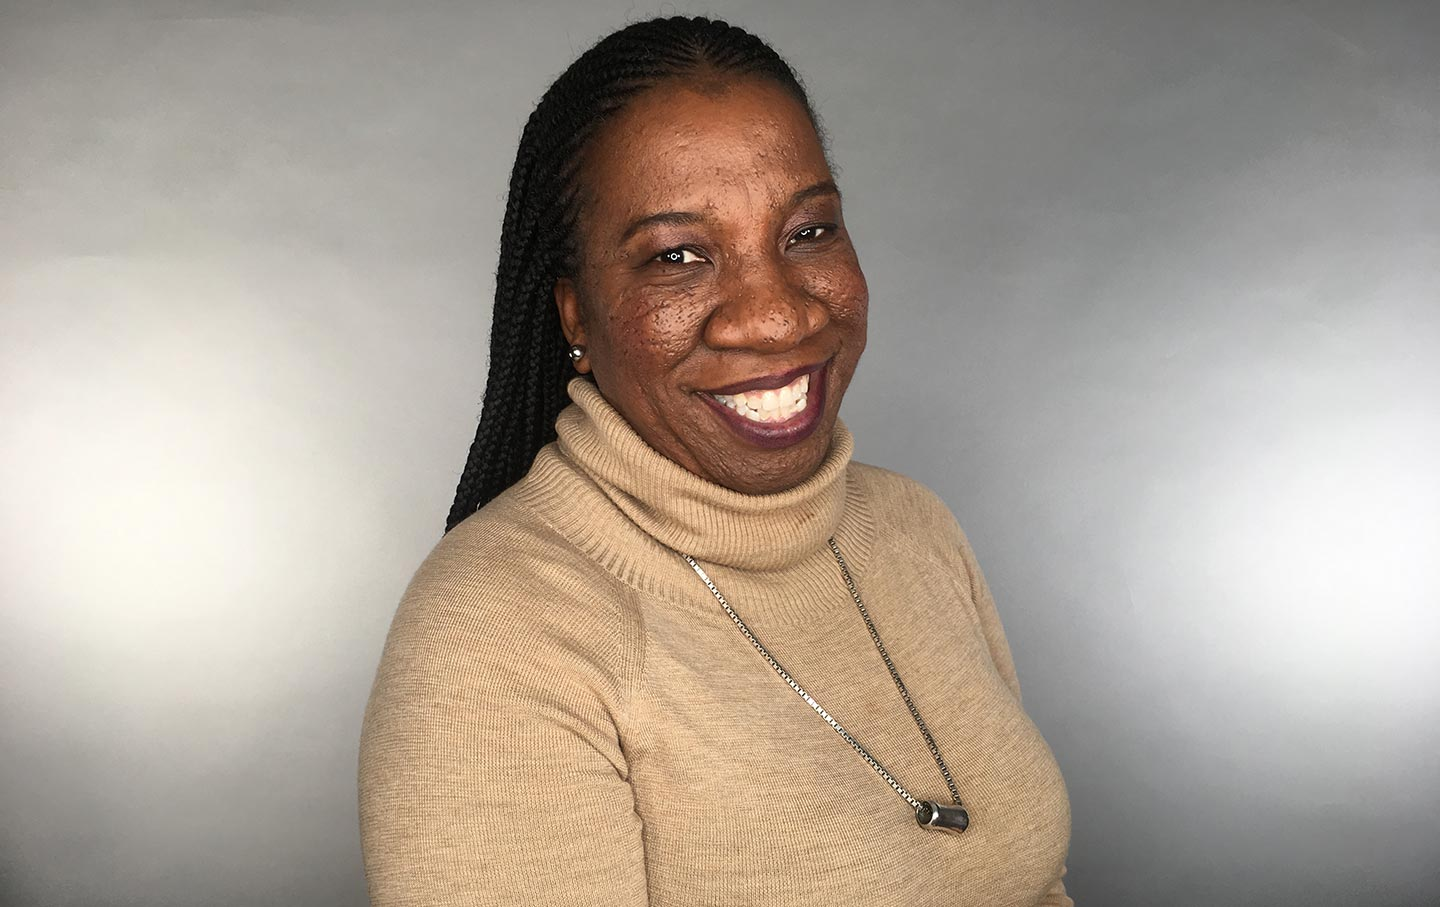 Tarana Burke - Creator of the #MeToo movement